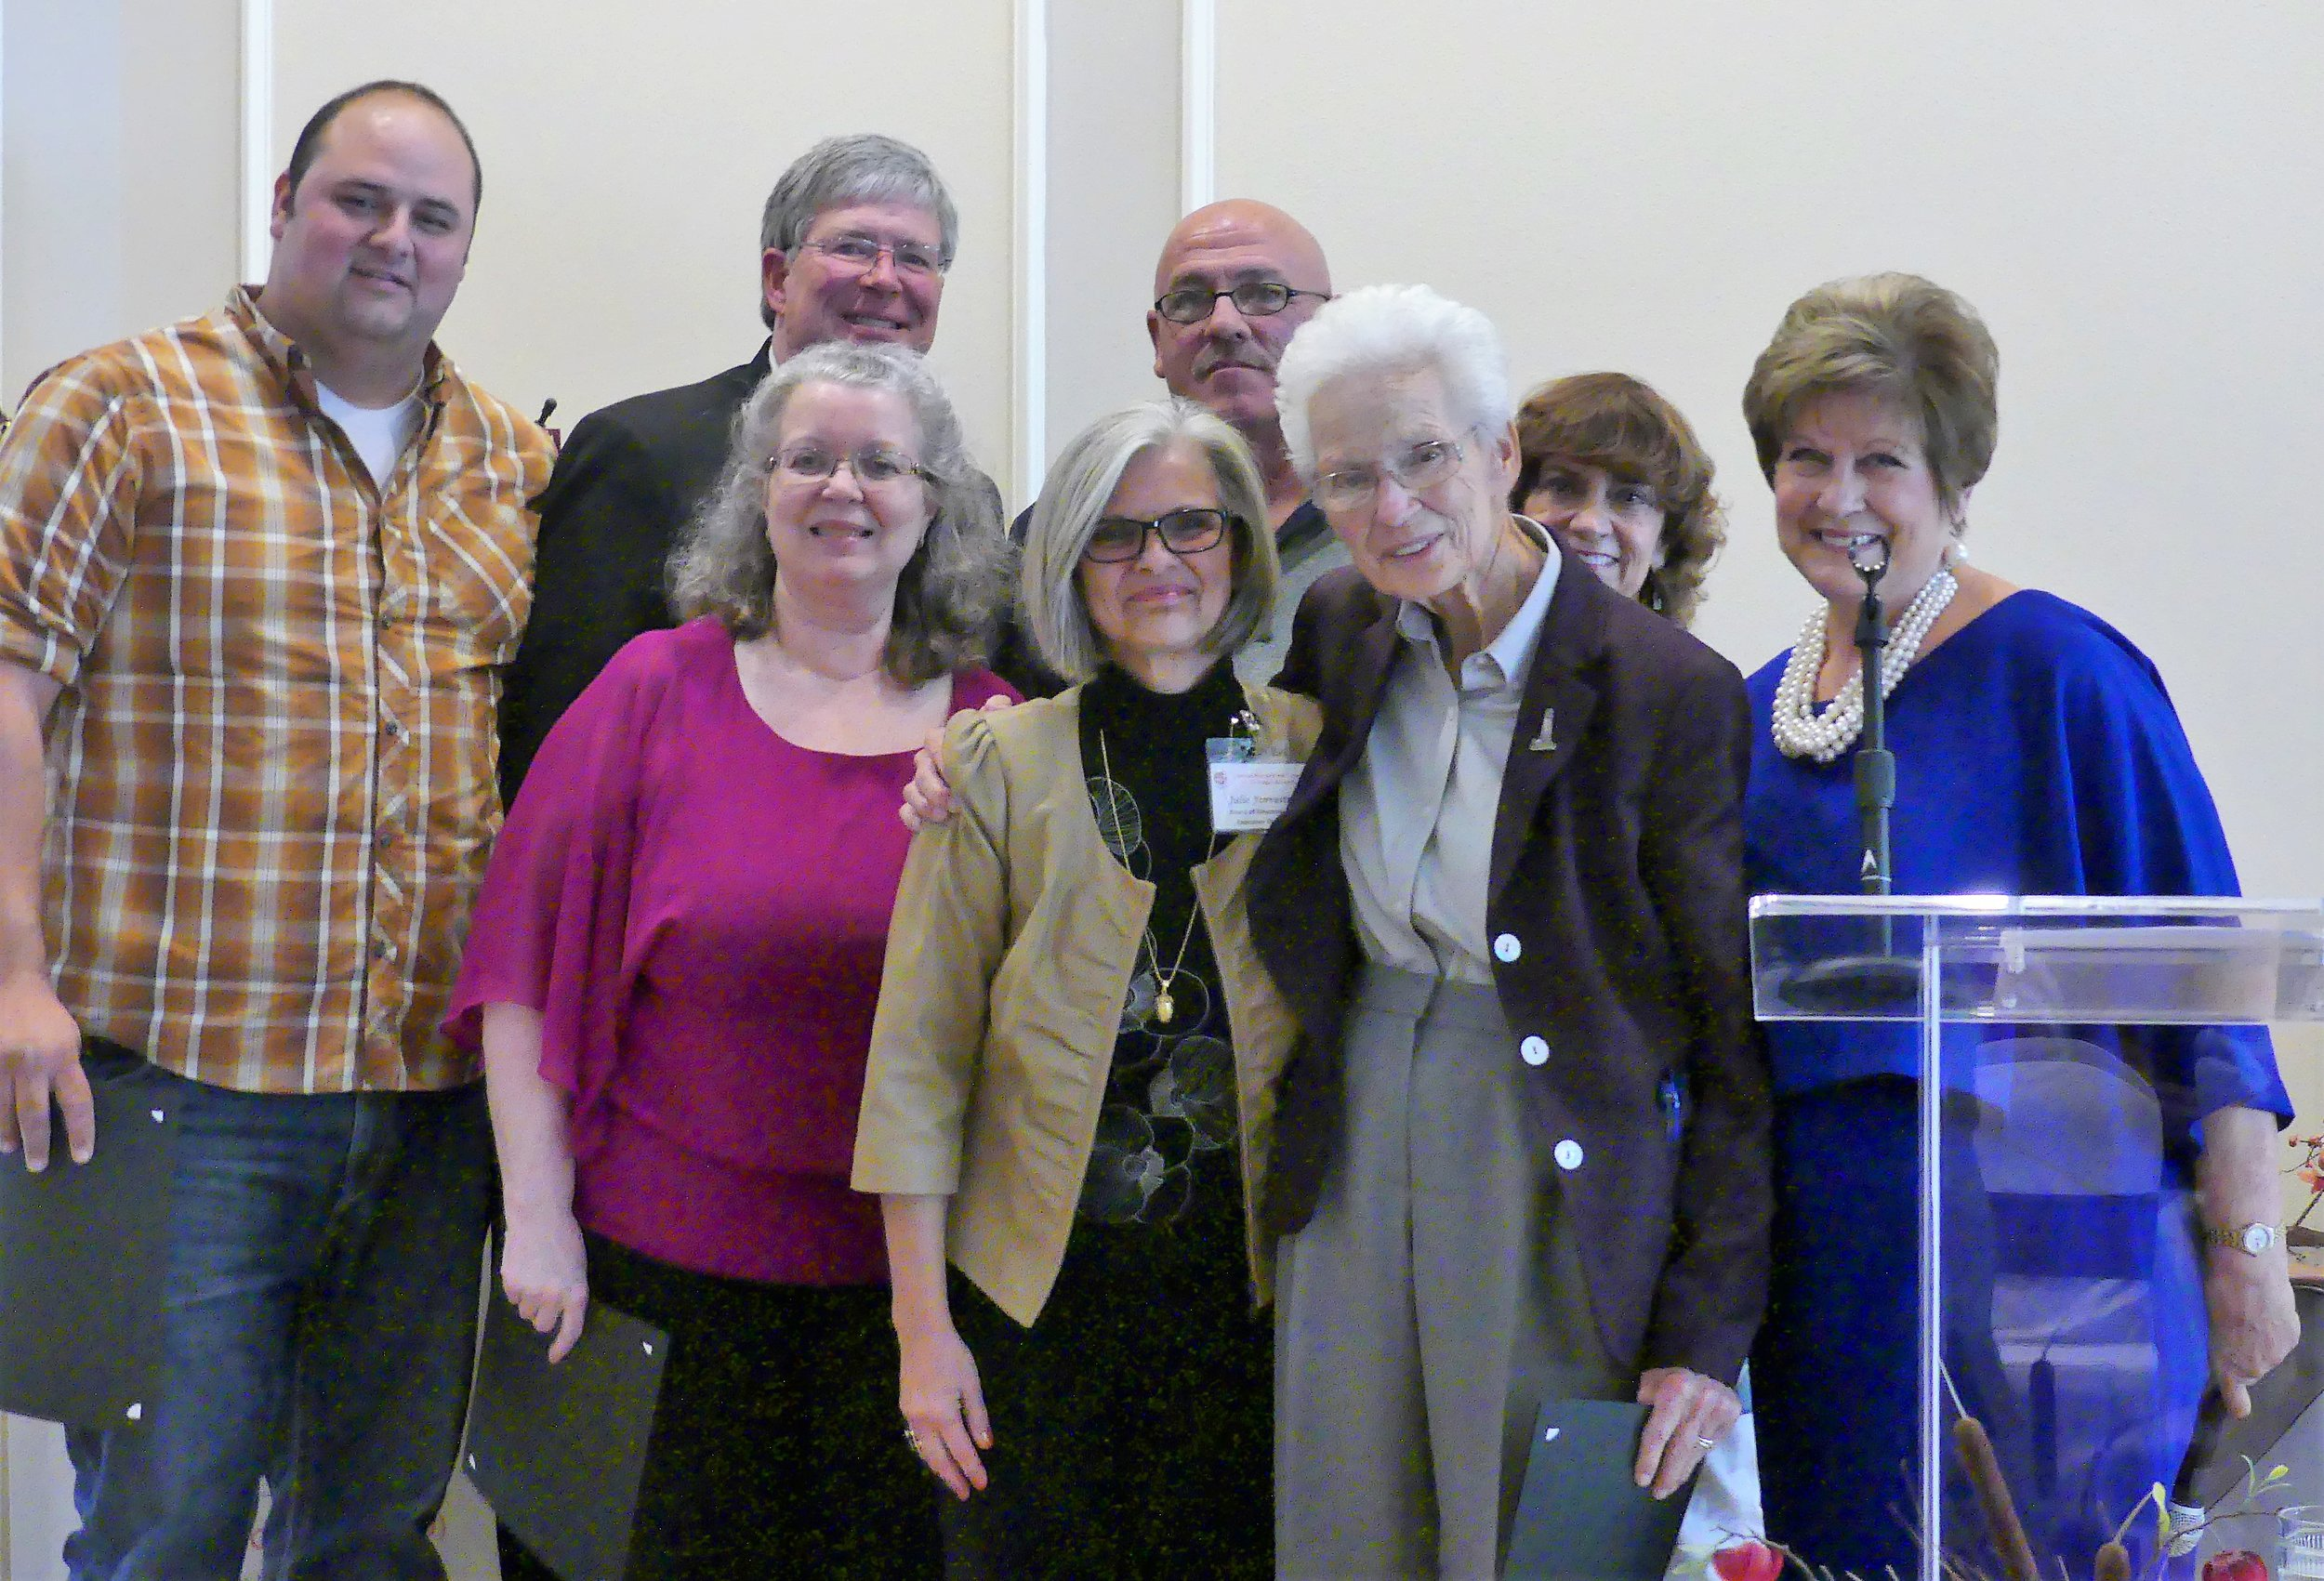 2017 Friend of CWJC - Presented to Mission Arlington, specifically pictured at right — Clark Burgin, Debbie Musgrave, Jim Burgin, Marvin Rogers, and Tillie Burgin. Also pictured, Julie Forrester, CWJC Director, Maritta Sumner & Judy Duke, Board & Ruby committee members.